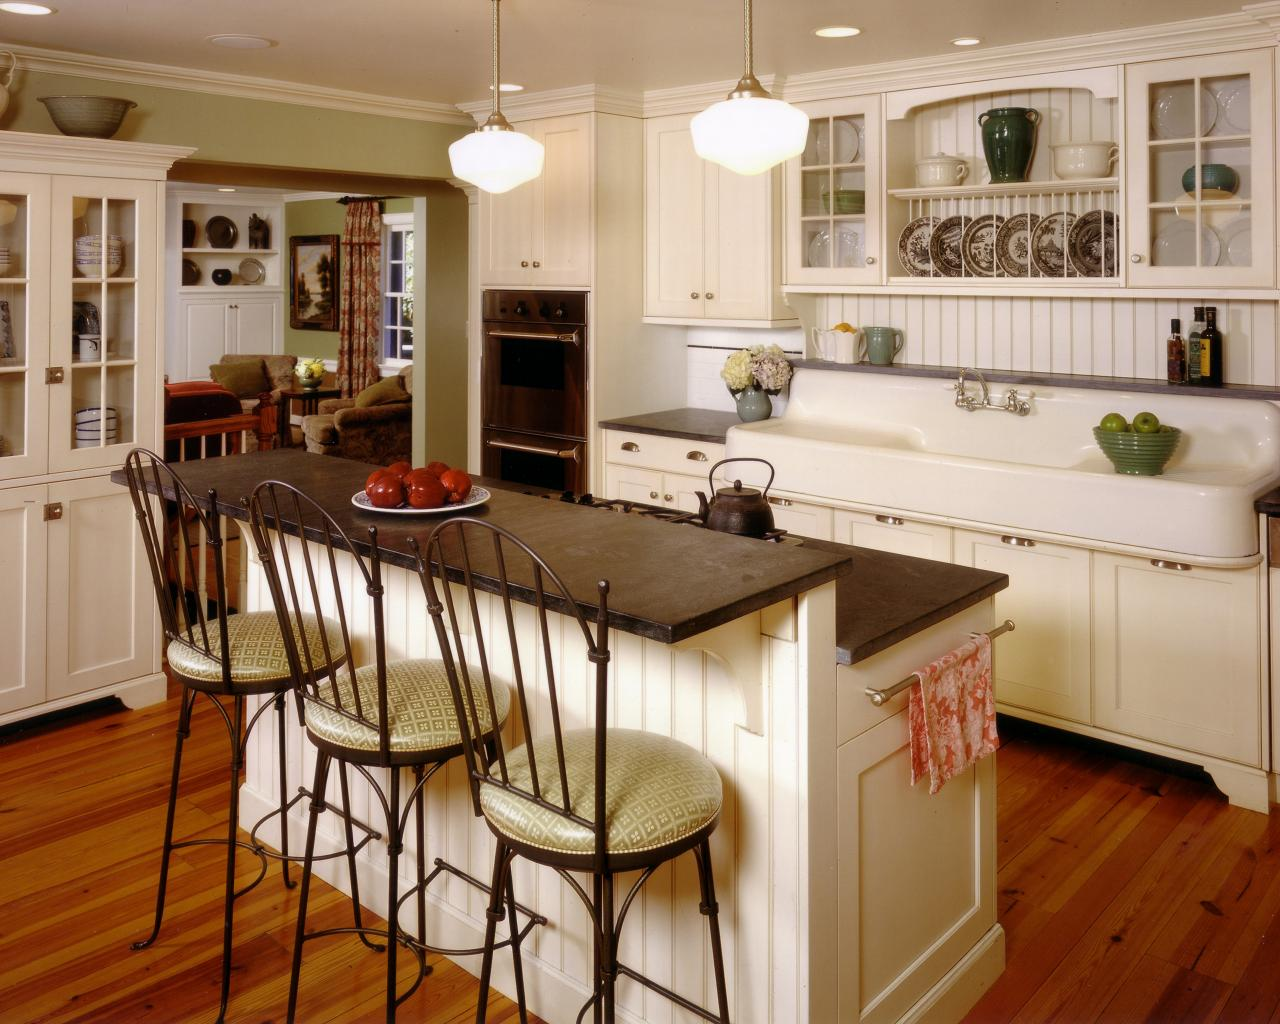 Country kitchen design pictures ideas tips from hgtv - Country style kitchen cabinets design ...